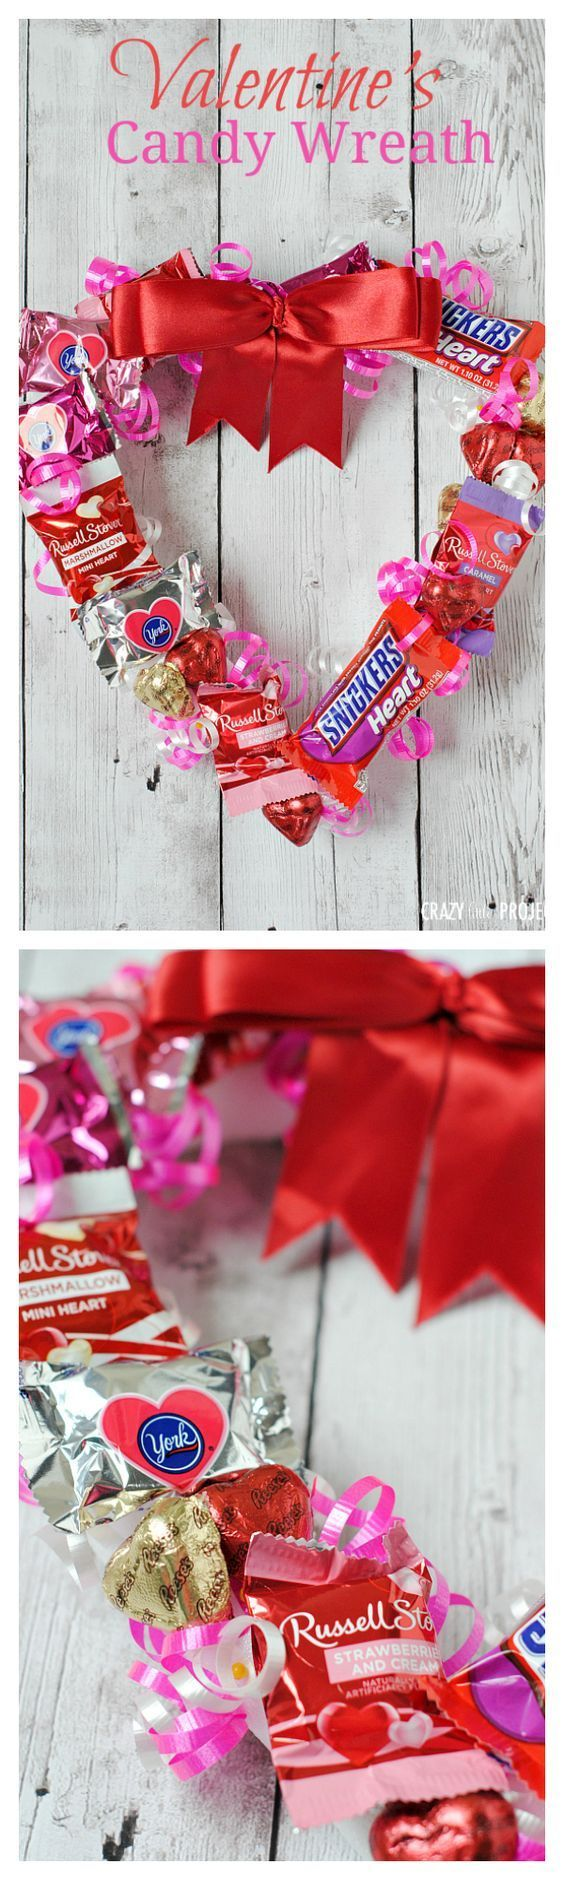 cute gift idea for valentines candy wreath - Valentines Day Gift Idea